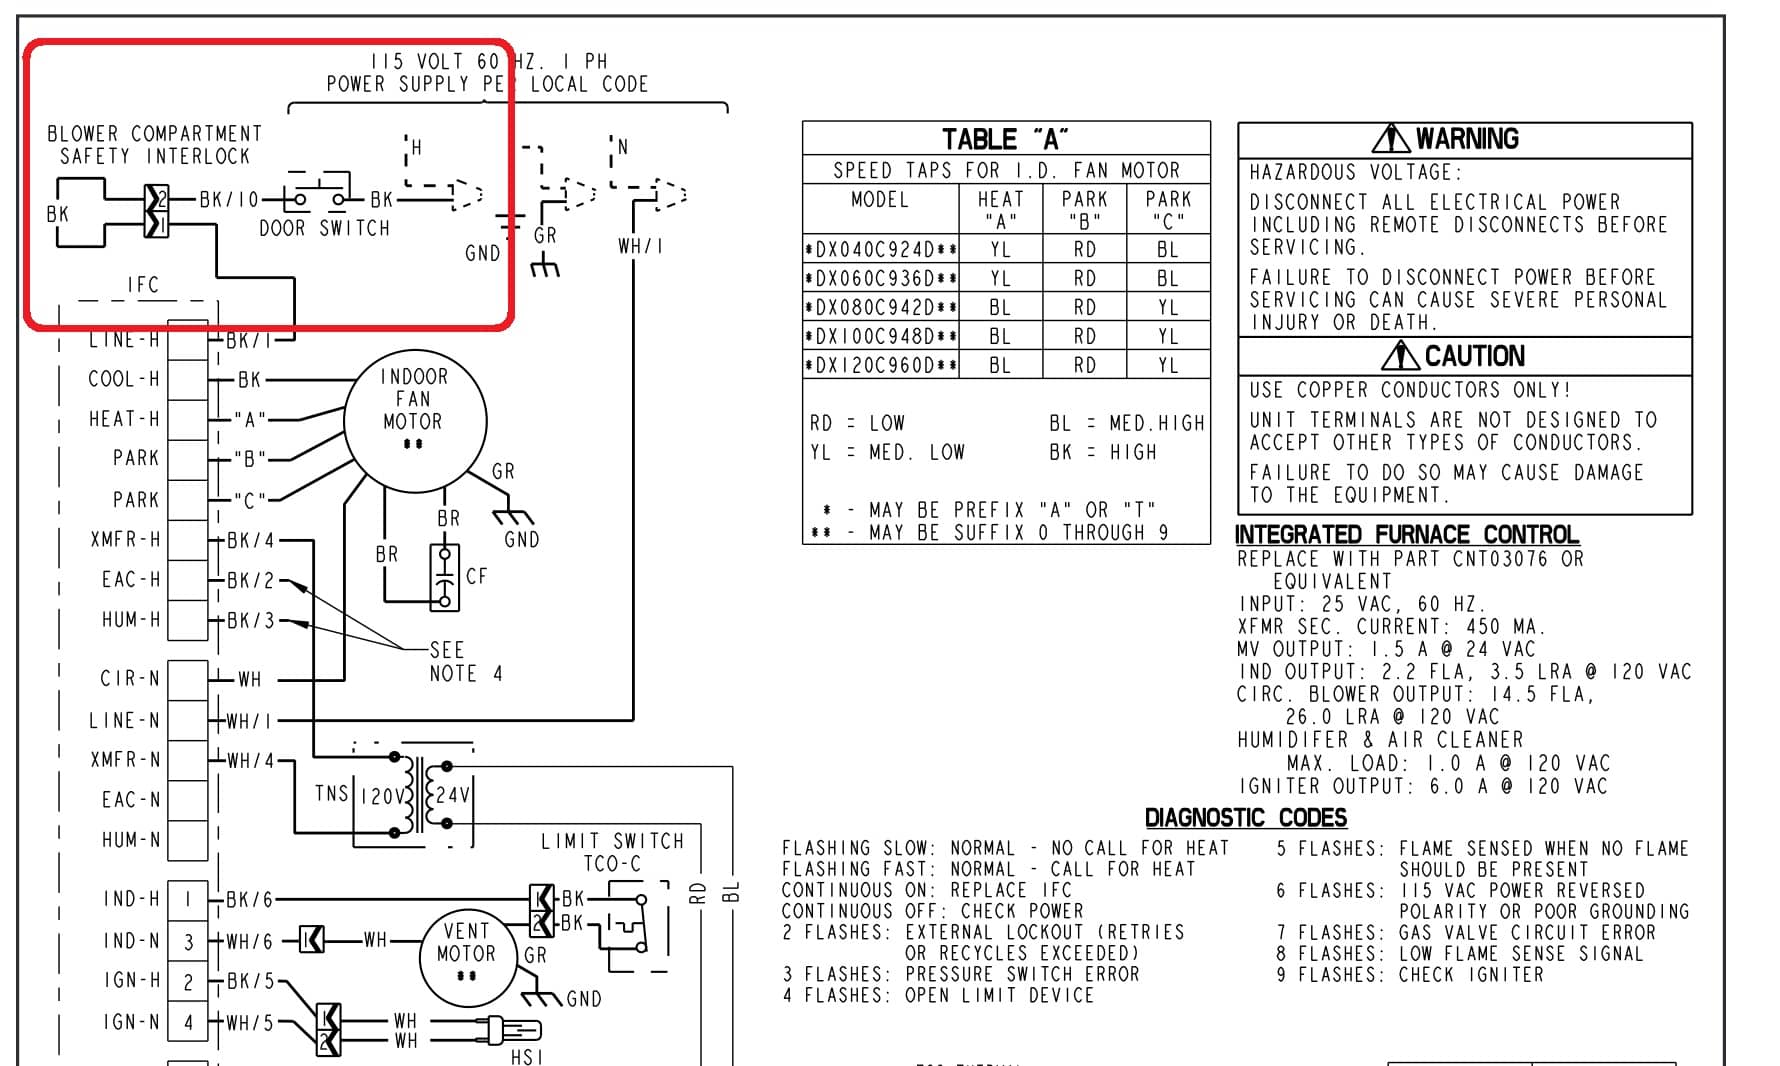 goodman heat pump wiring diagrams with Blower Door Interlock Switch on Gpc M Series Goodman Air Handler Wiring Diagram furthermore Blower Door Interlock Switch together with HVAC Clearance Distances further Heat Pump Backup Heat furthermore Sanyo Air Conditioners And Heat Pump Electrical Wiring Diagram.